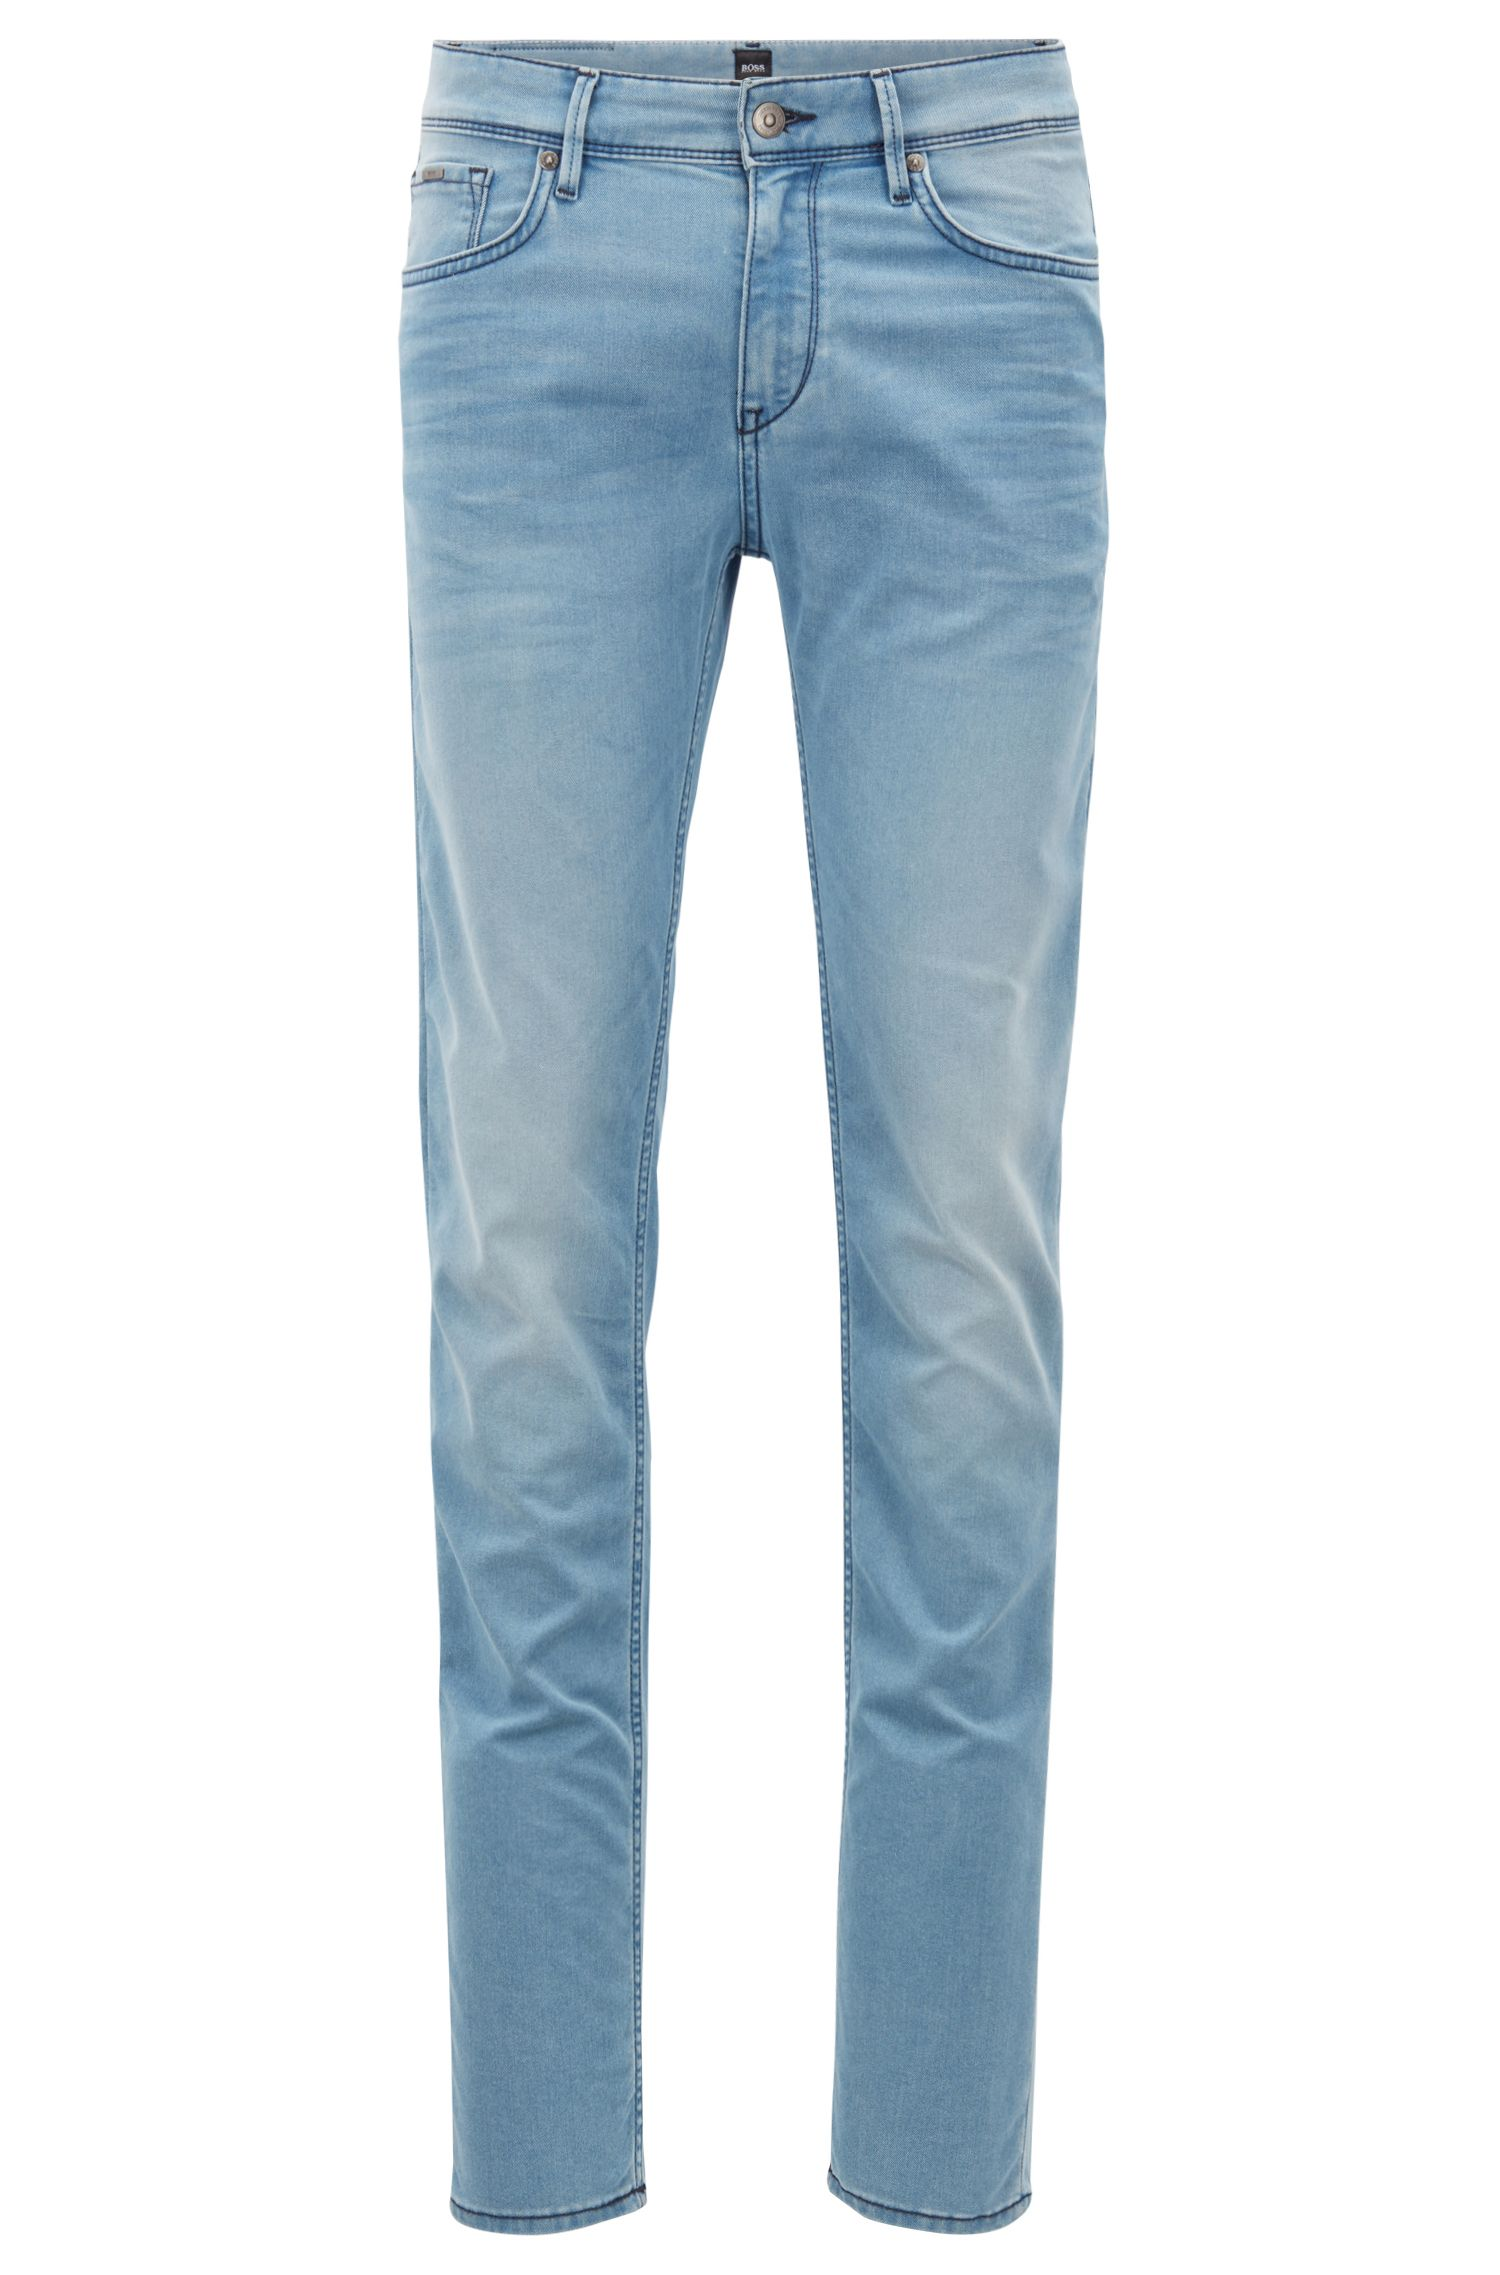 Extra-slim-fit jeans in Italian stretch denim, Turquoise